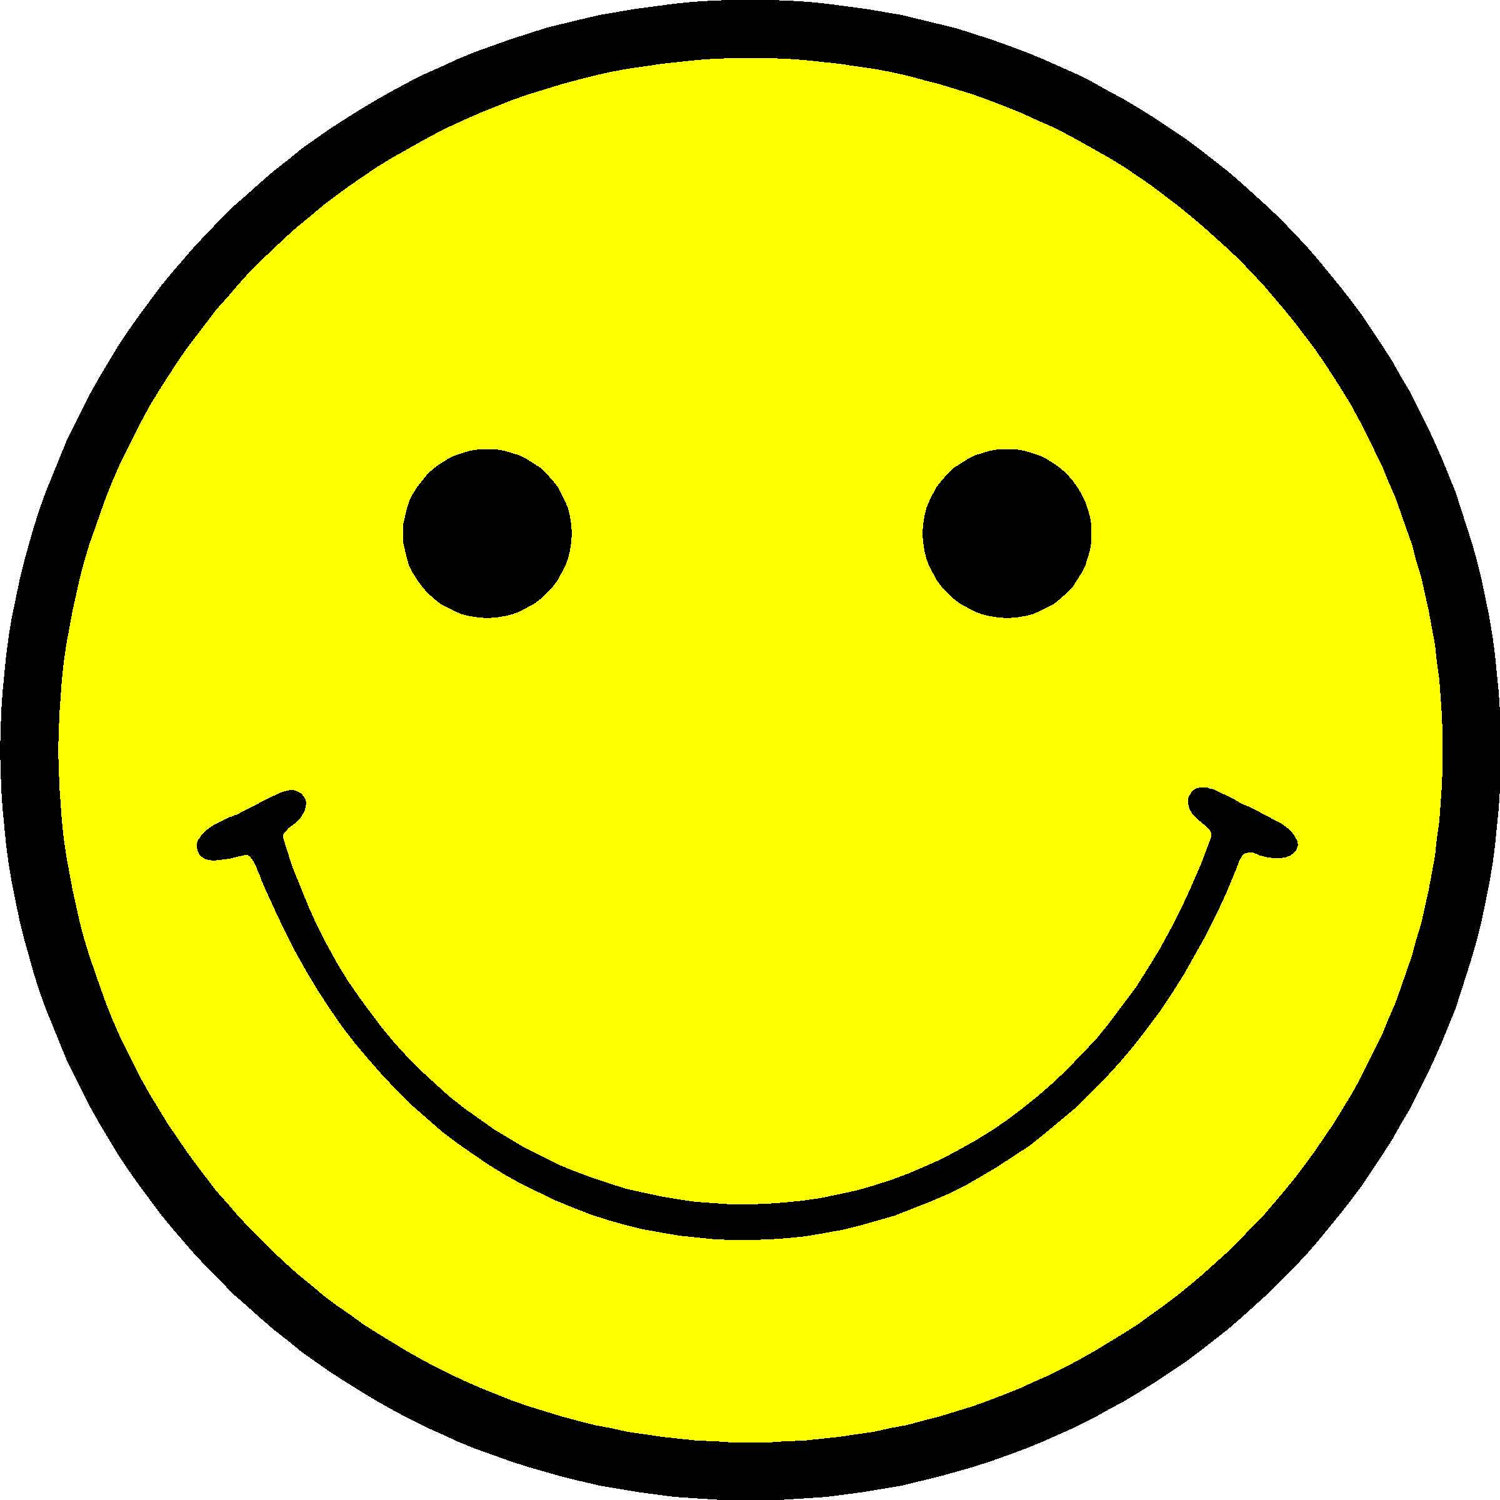 Smile clipart images picture black and white stock Smile cliparts cliparts and others art inspiration ... picture black and white stock